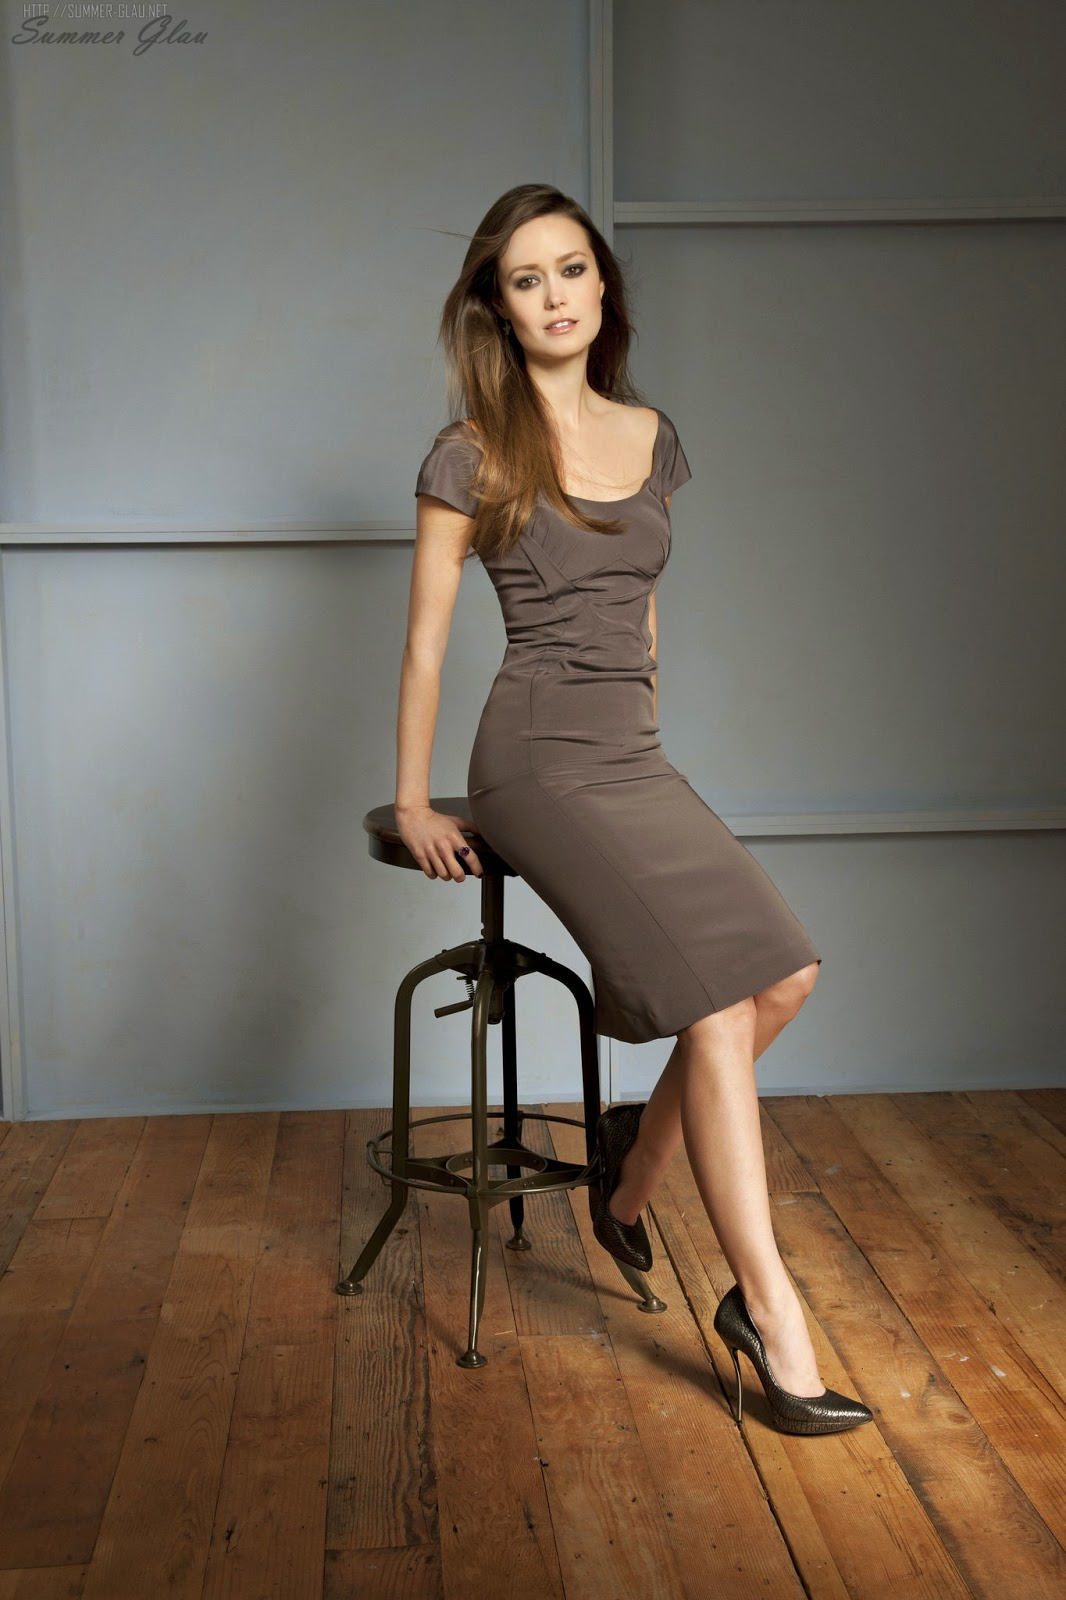 celebs galaxy summer glau 2 breathtaking shoots. Black Bedroom Furniture Sets. Home Design Ideas